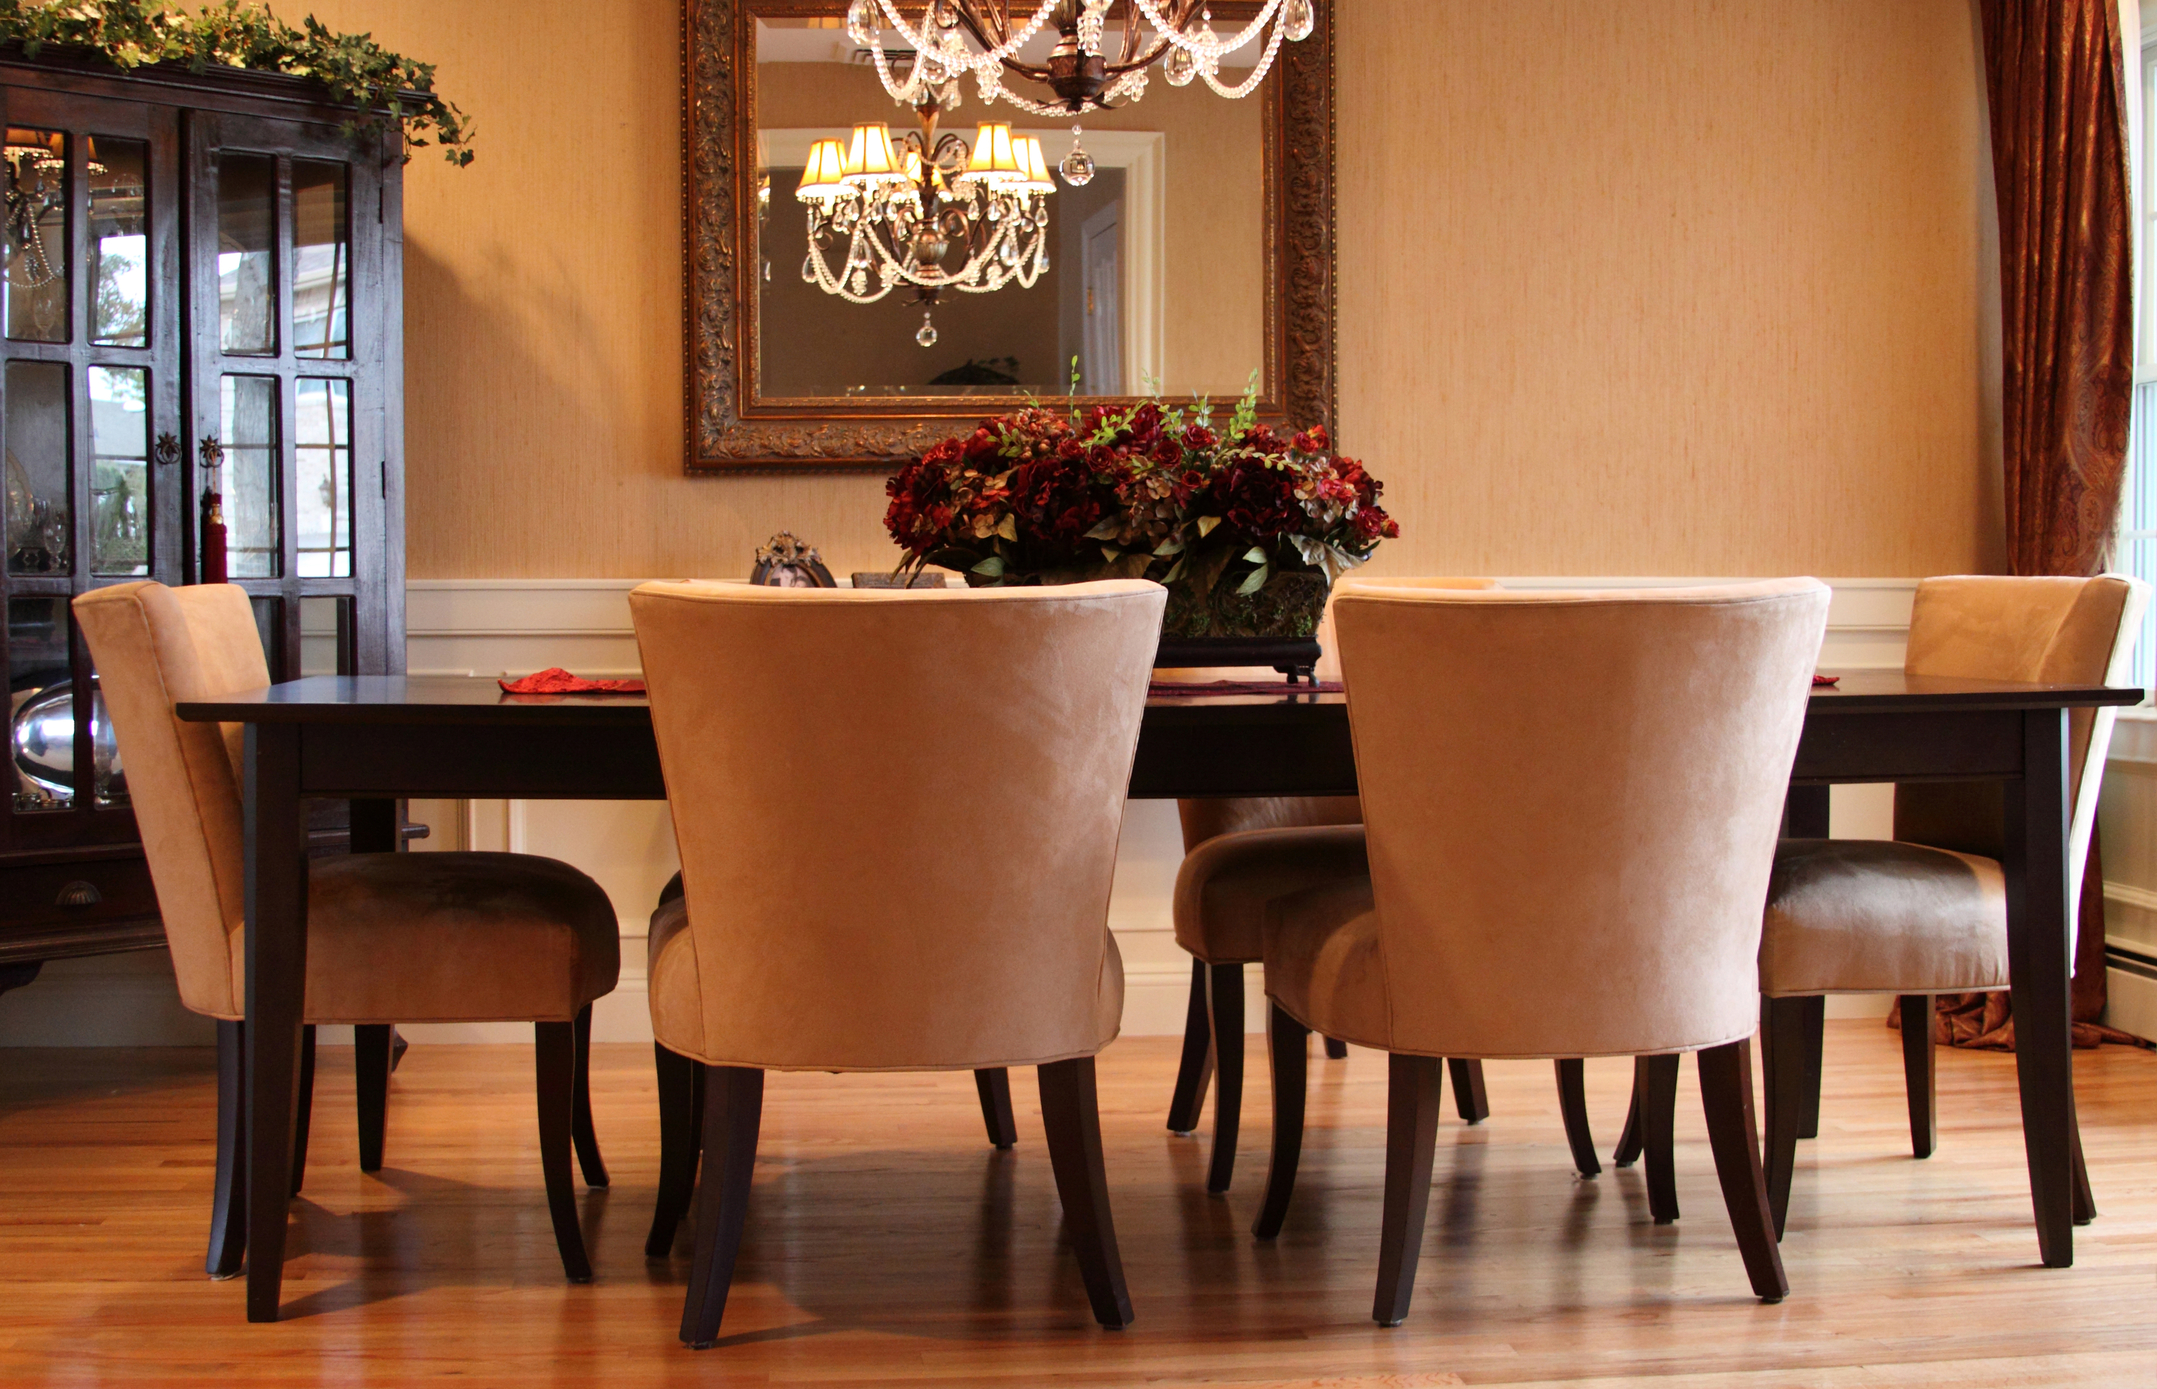 6 Best Colors For Your Dining Room According To Feng Shui Lovetoknow